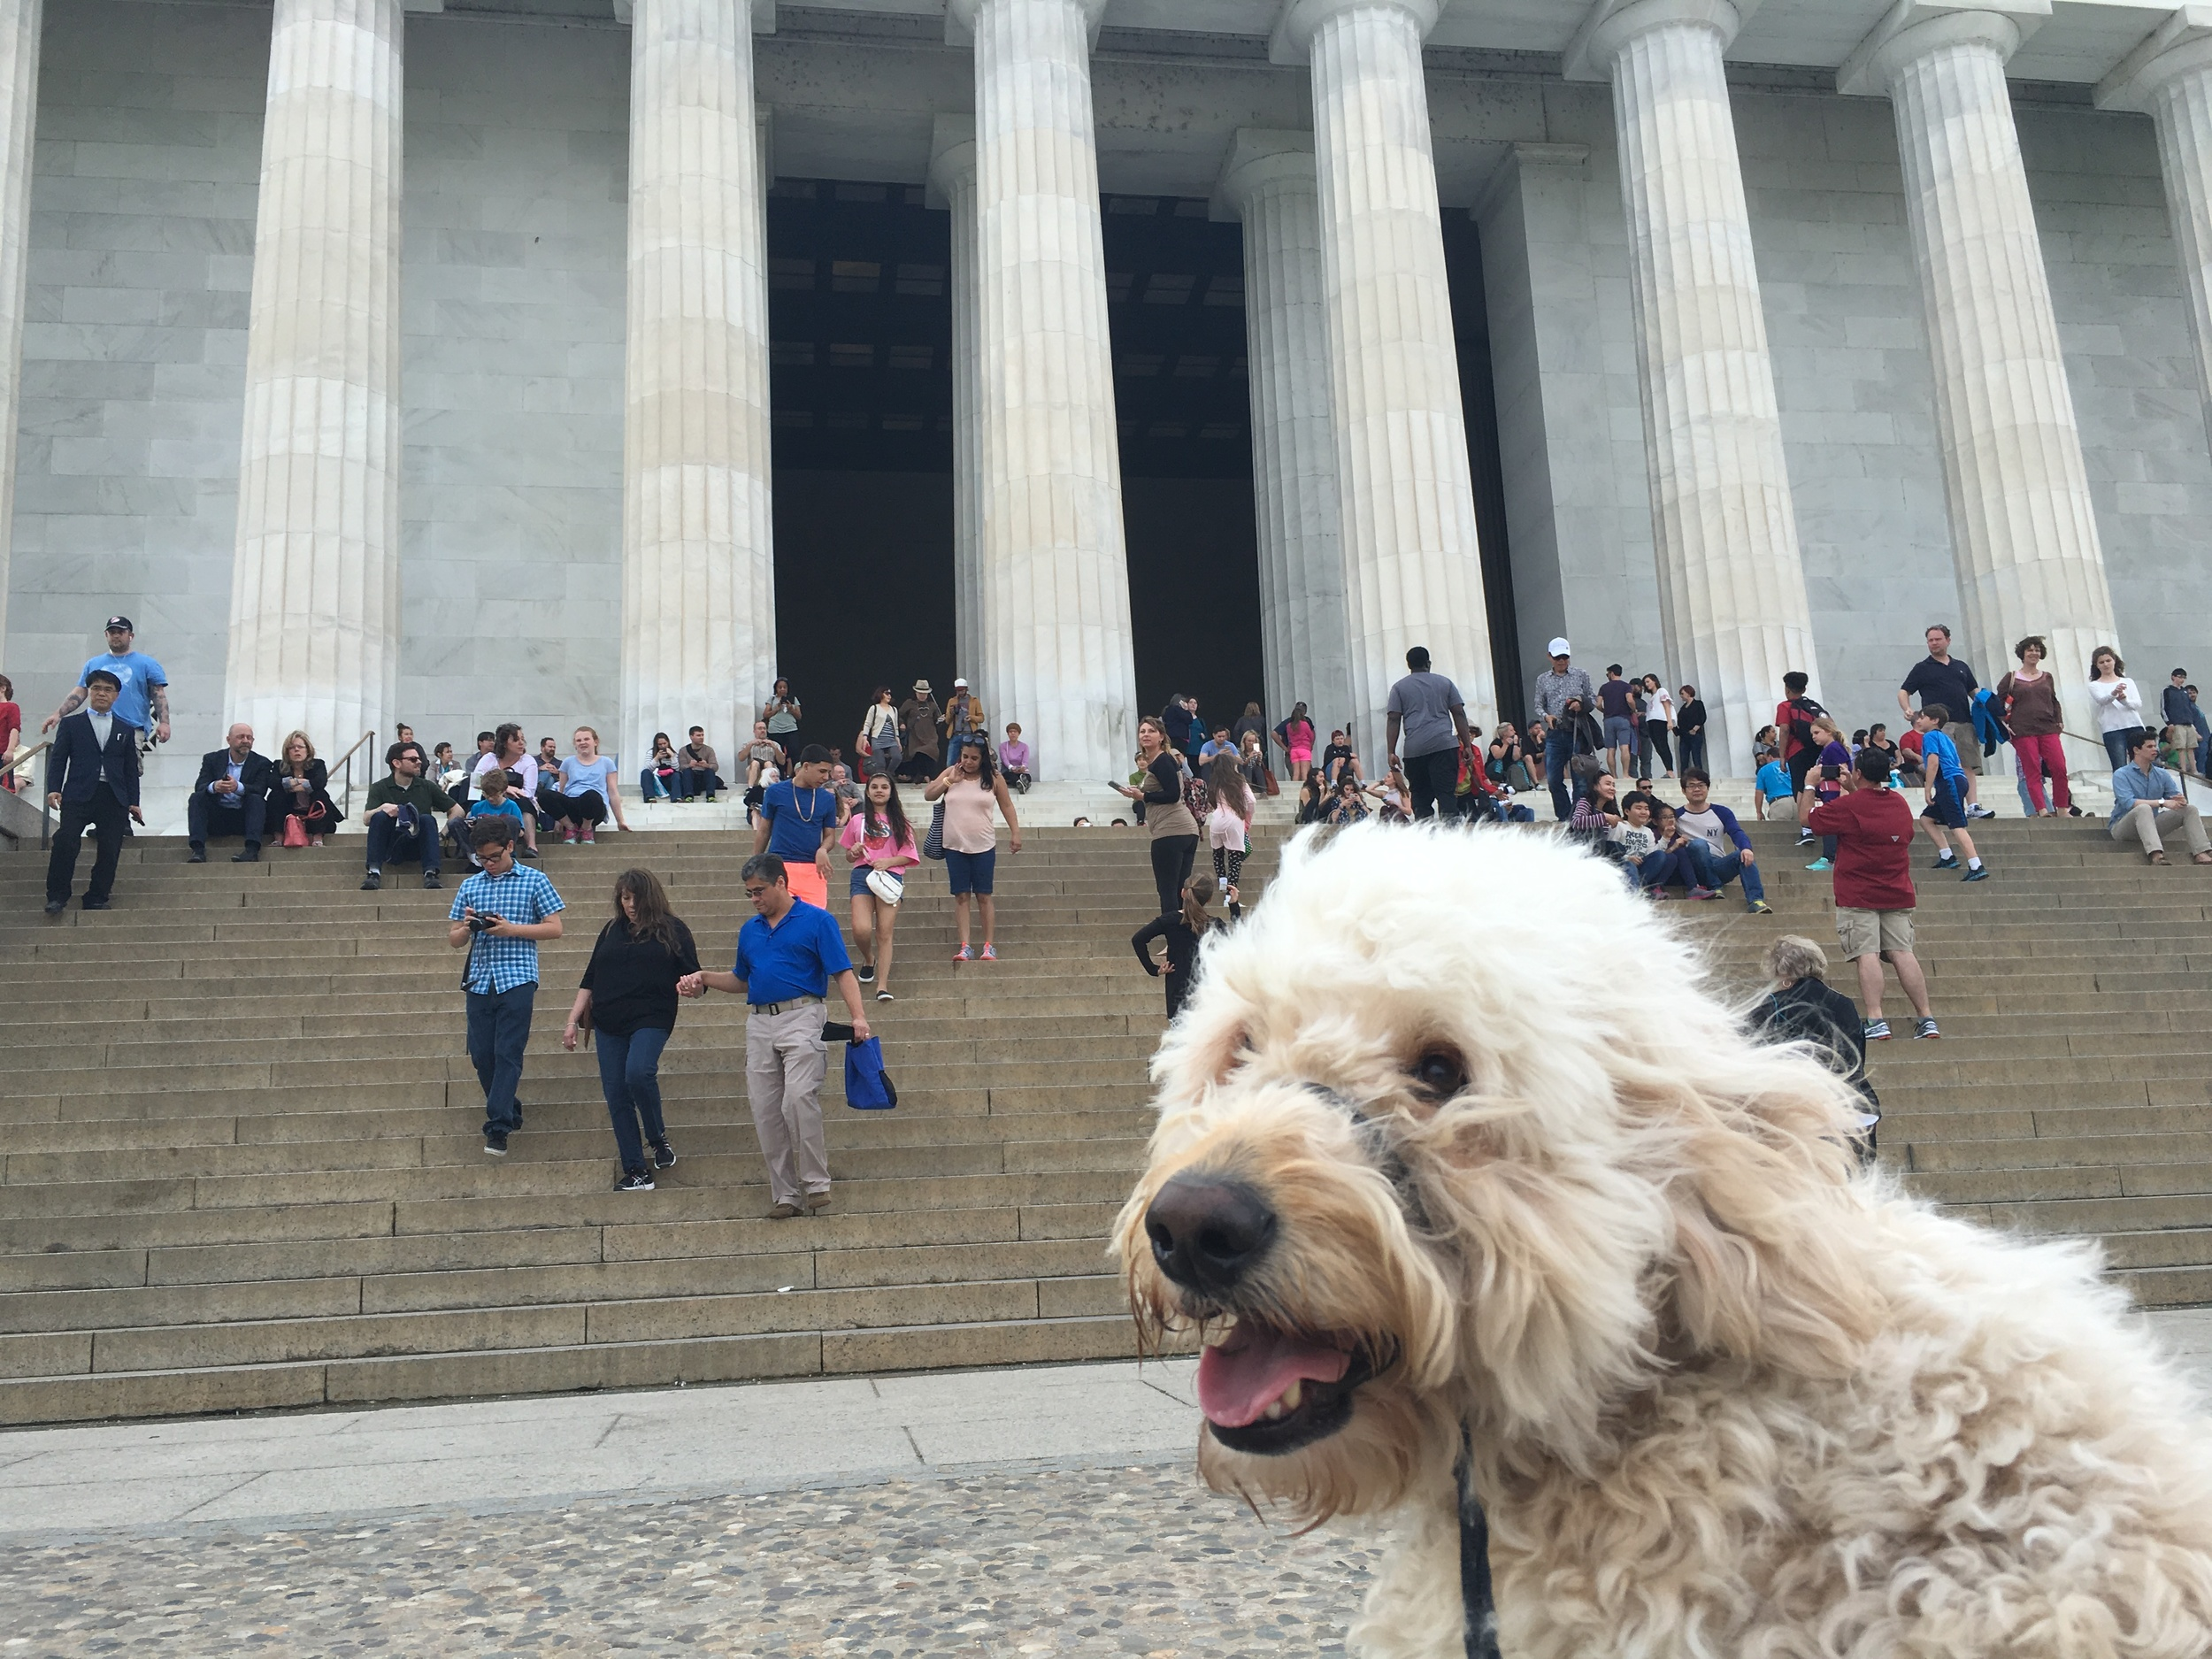 Here he is at the steps of the Lincoln Monument. He was the star of many photos here.